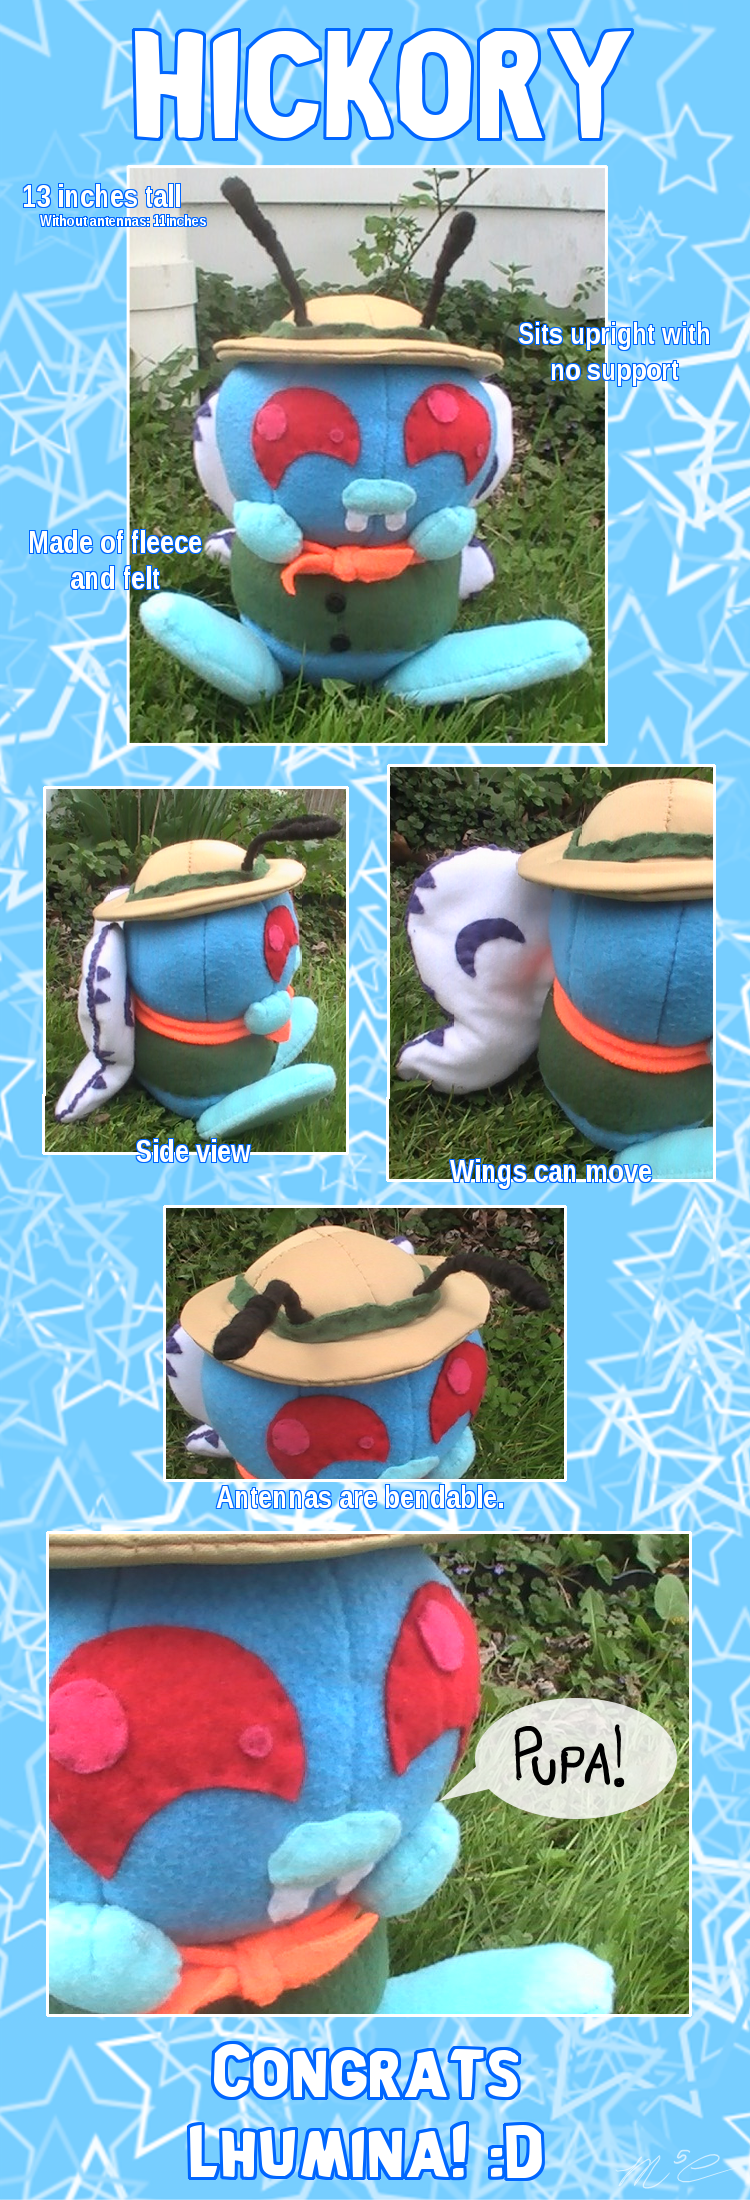 1st Place Prize: Hickory Plushie by TheGrumpyTurtle